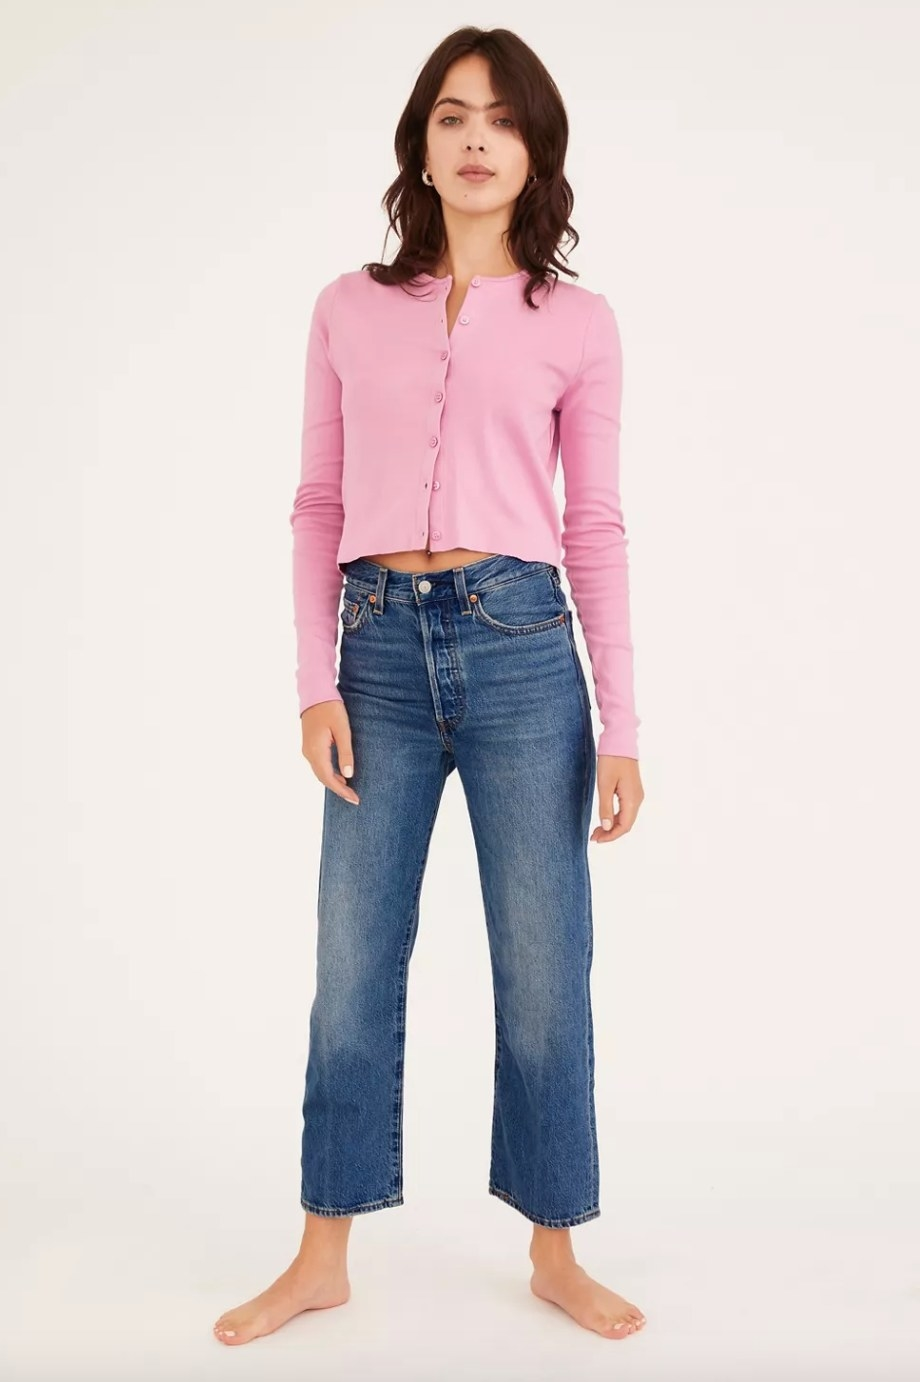 the pair of Levi's ribcage jeans